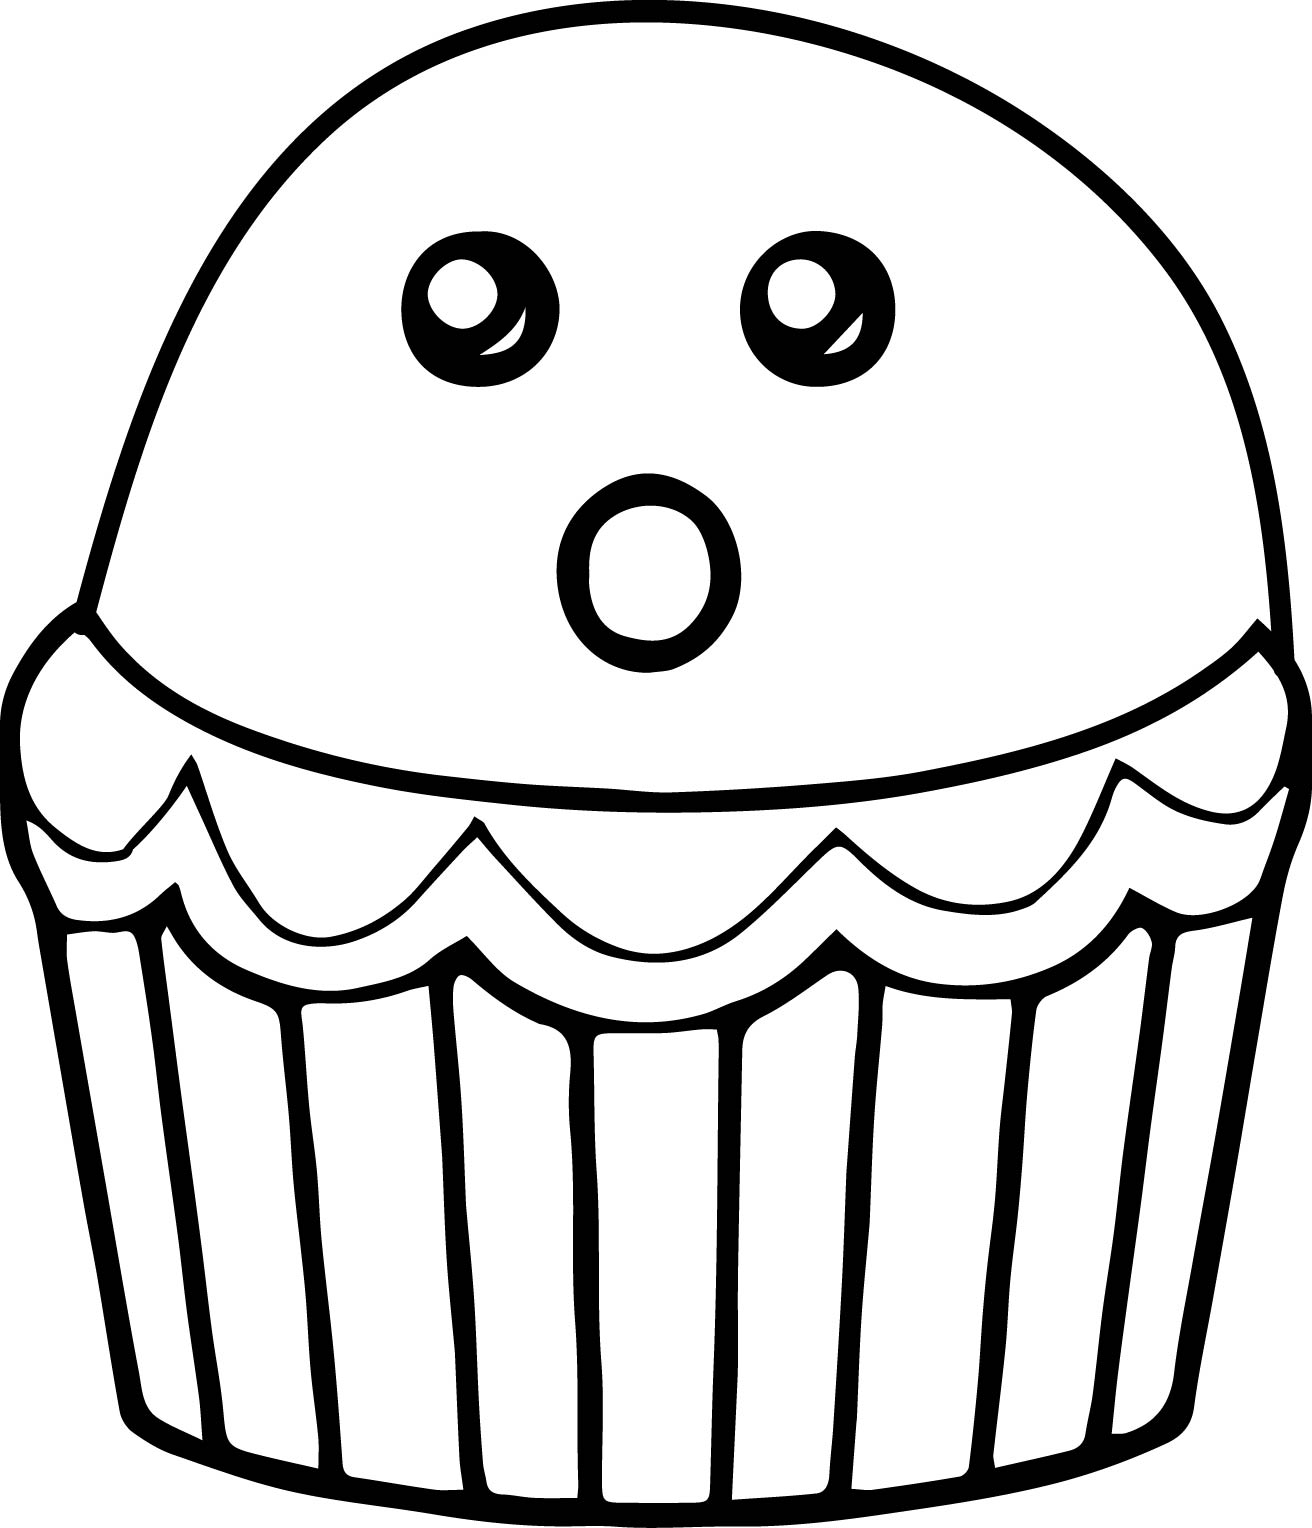 Cupcake Cartoon Drawing at GetDrawings.com | Free for personal use ...